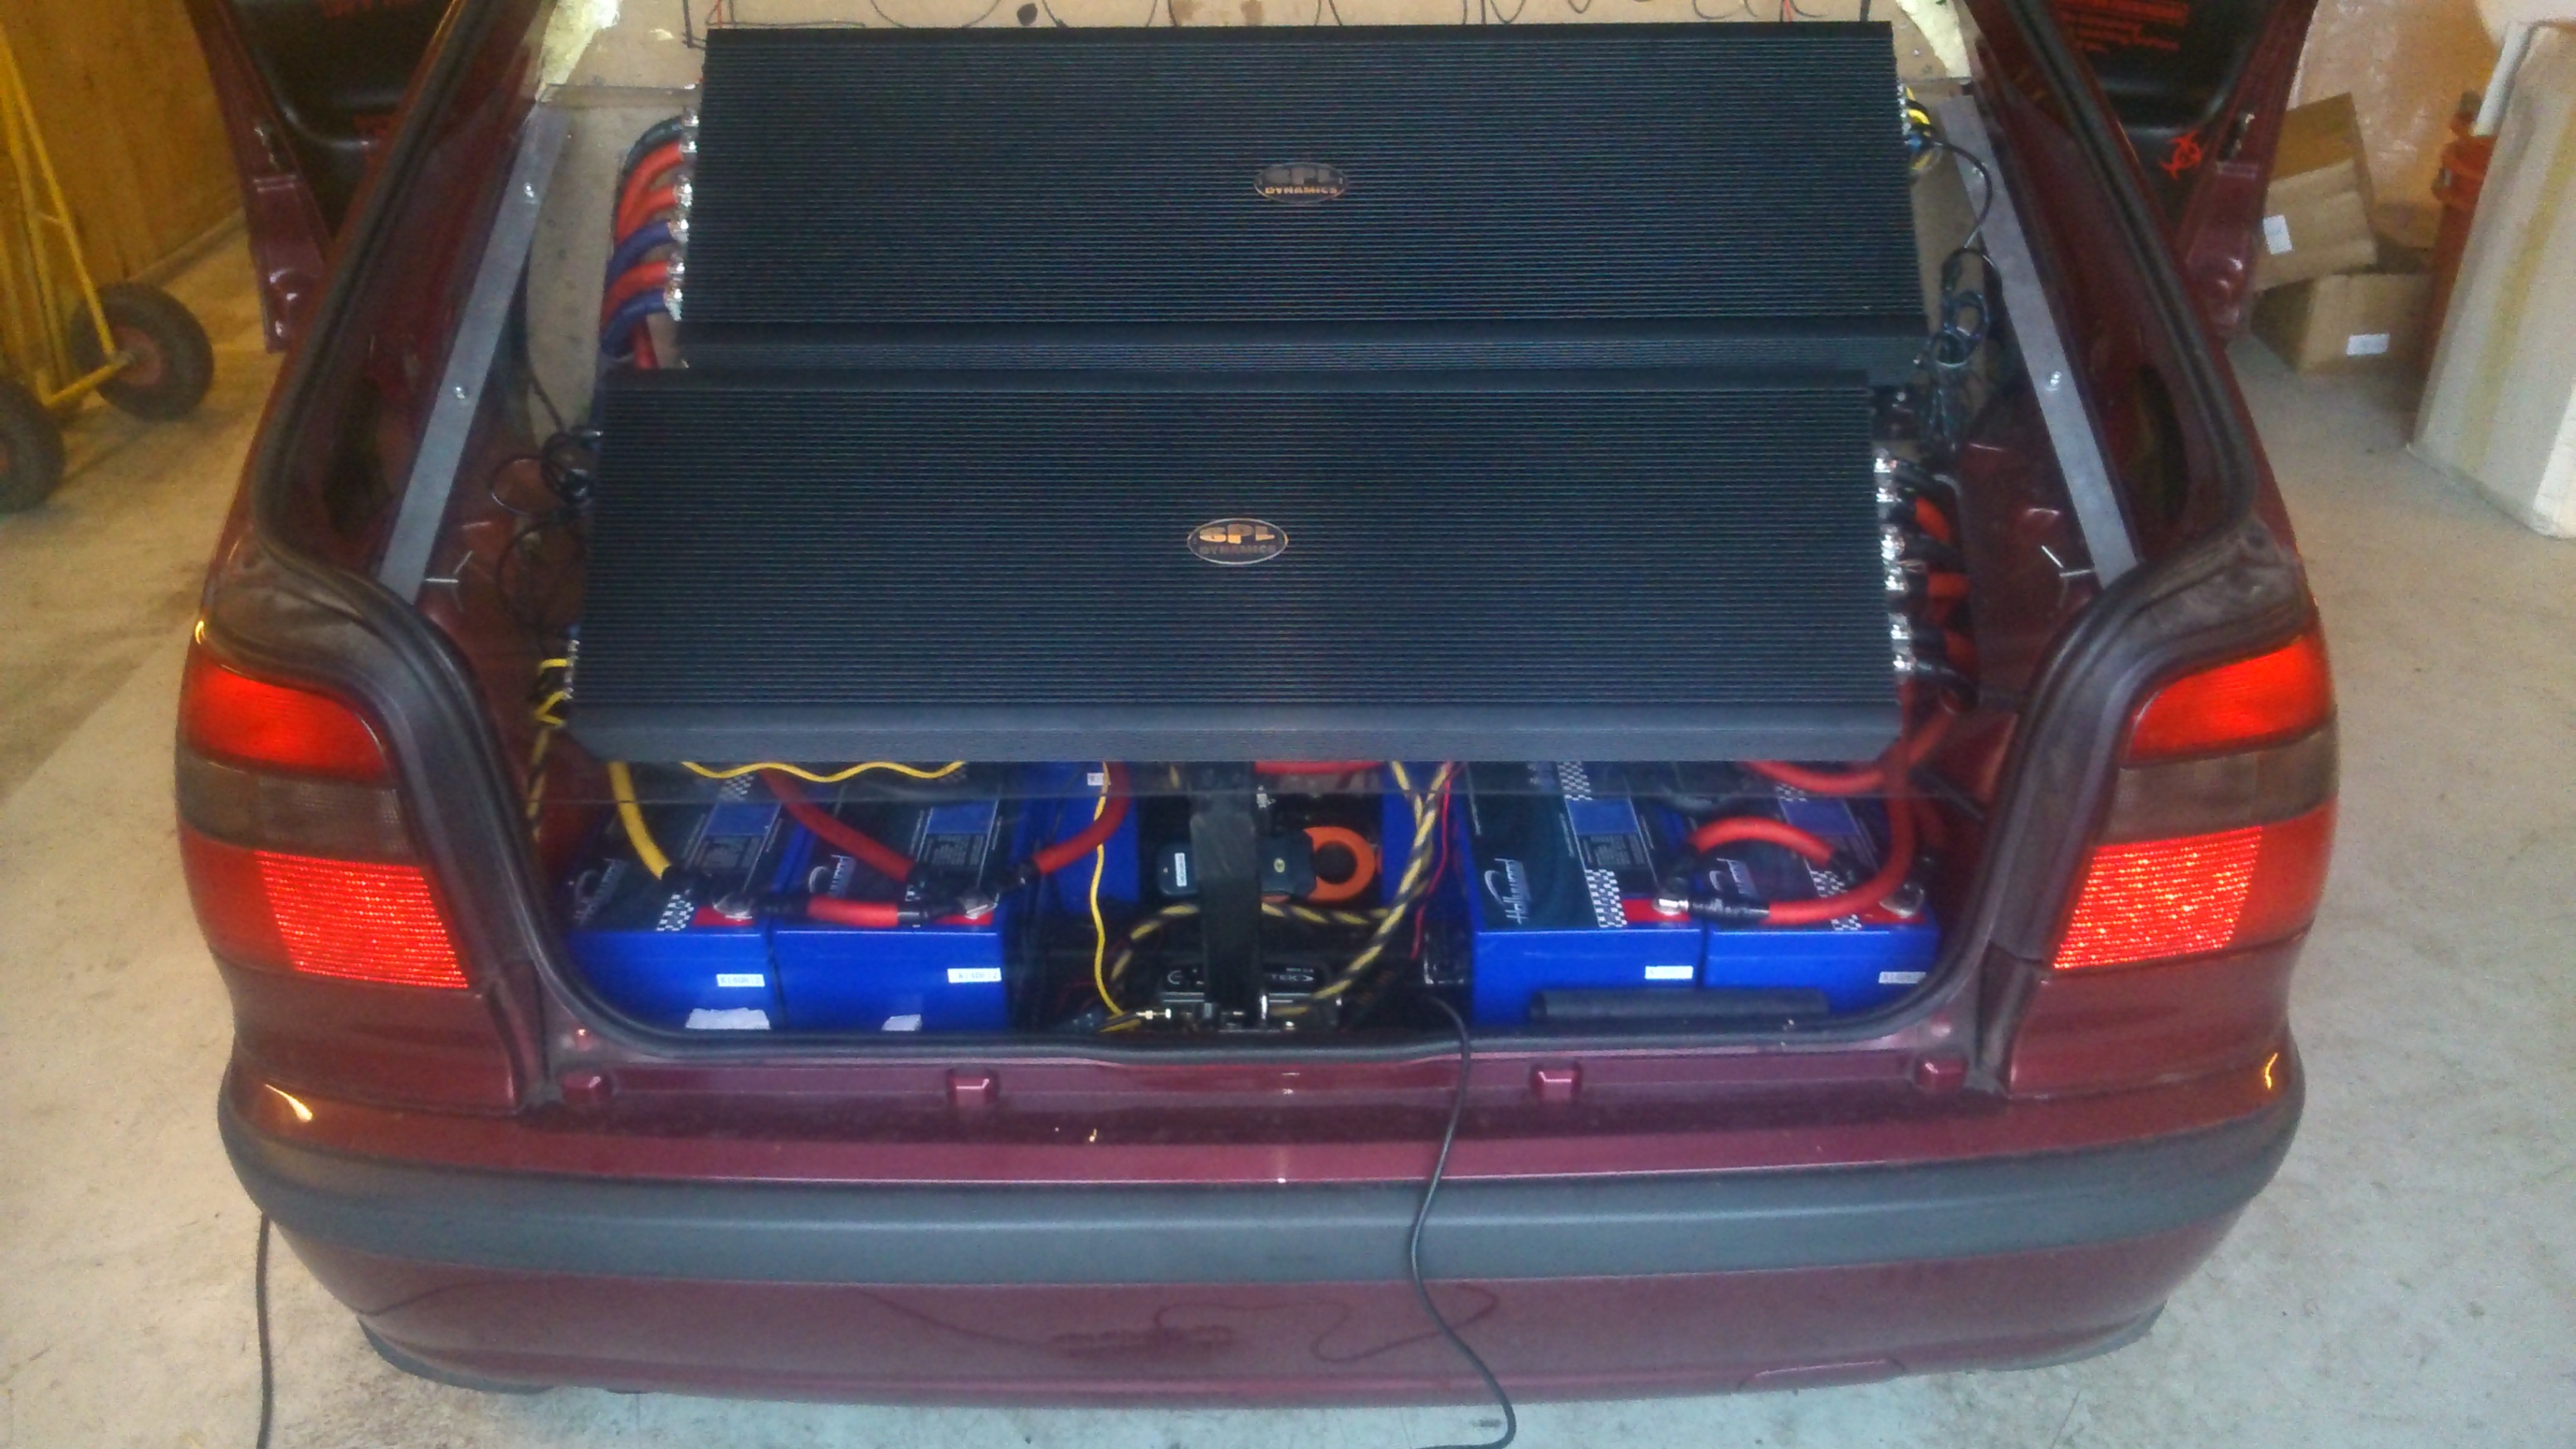 Mad Car Audio Skoda Felicia 40 000 Watt